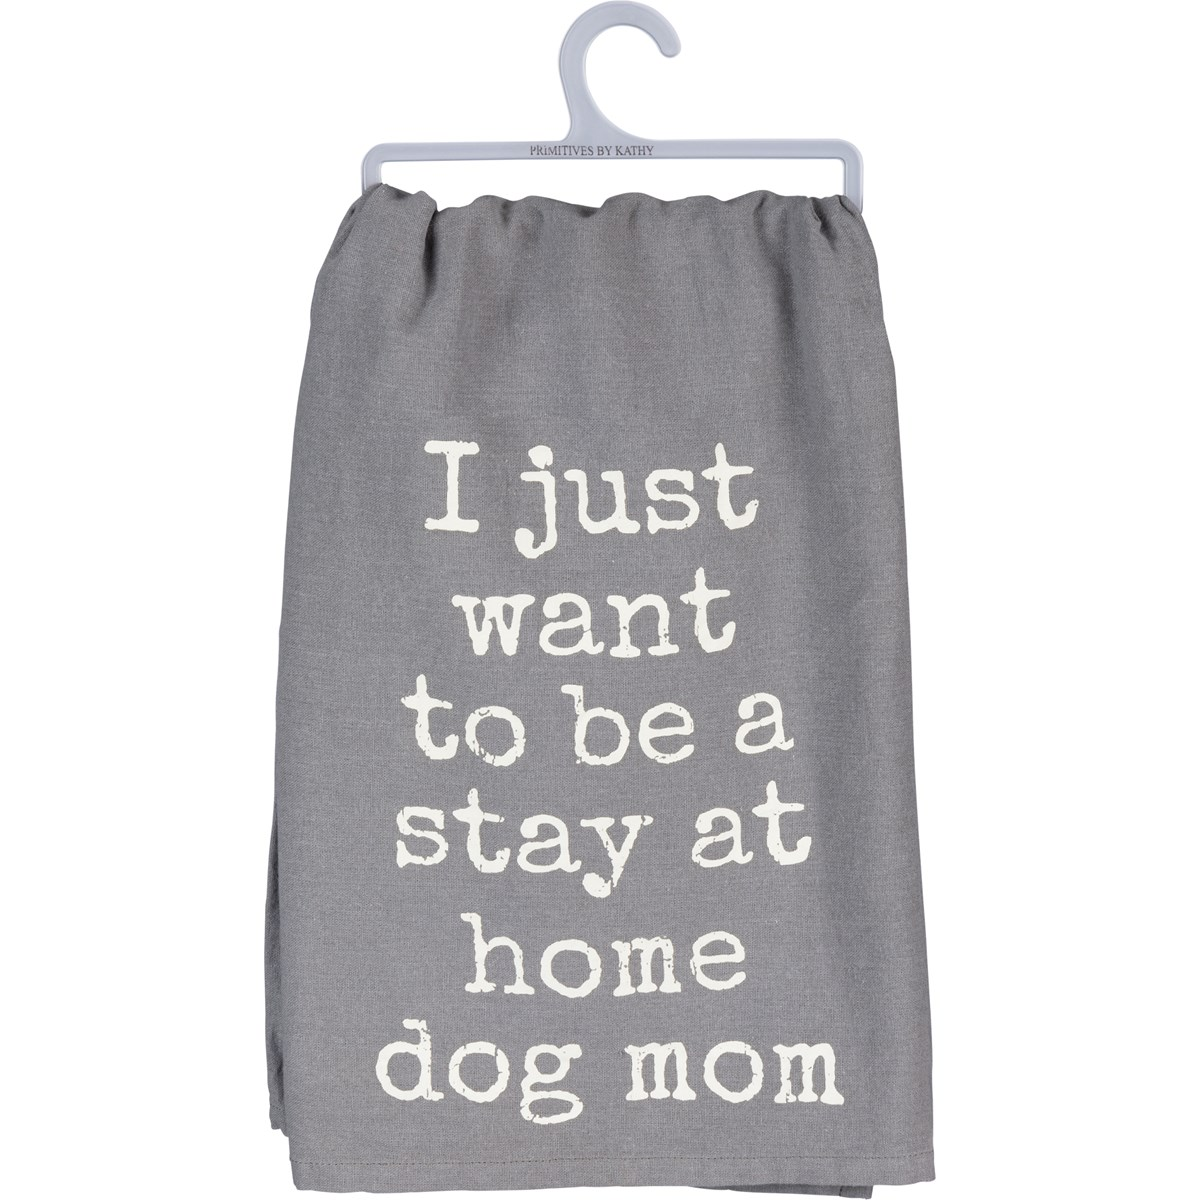 "Dish Towel - Want To Be A Stay At Home Dog Mom - 28"" x 28"" - Cotton"